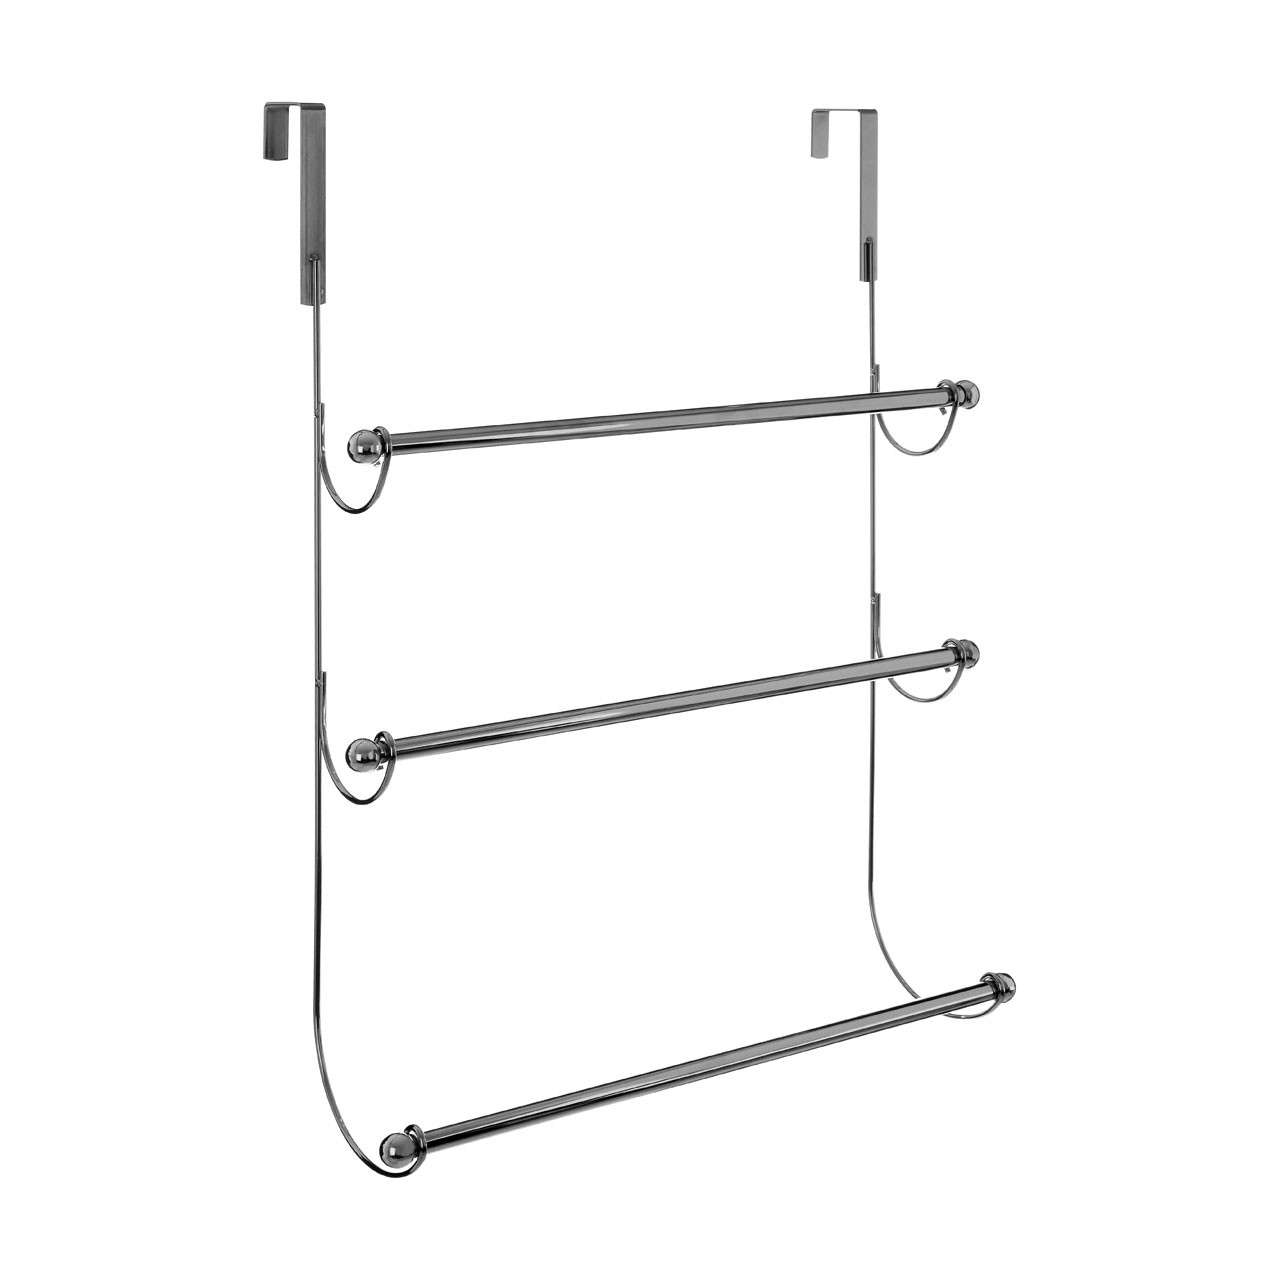 Prime Furnishing 3-Tier Over Door Hanging Towel Rail - Chrome